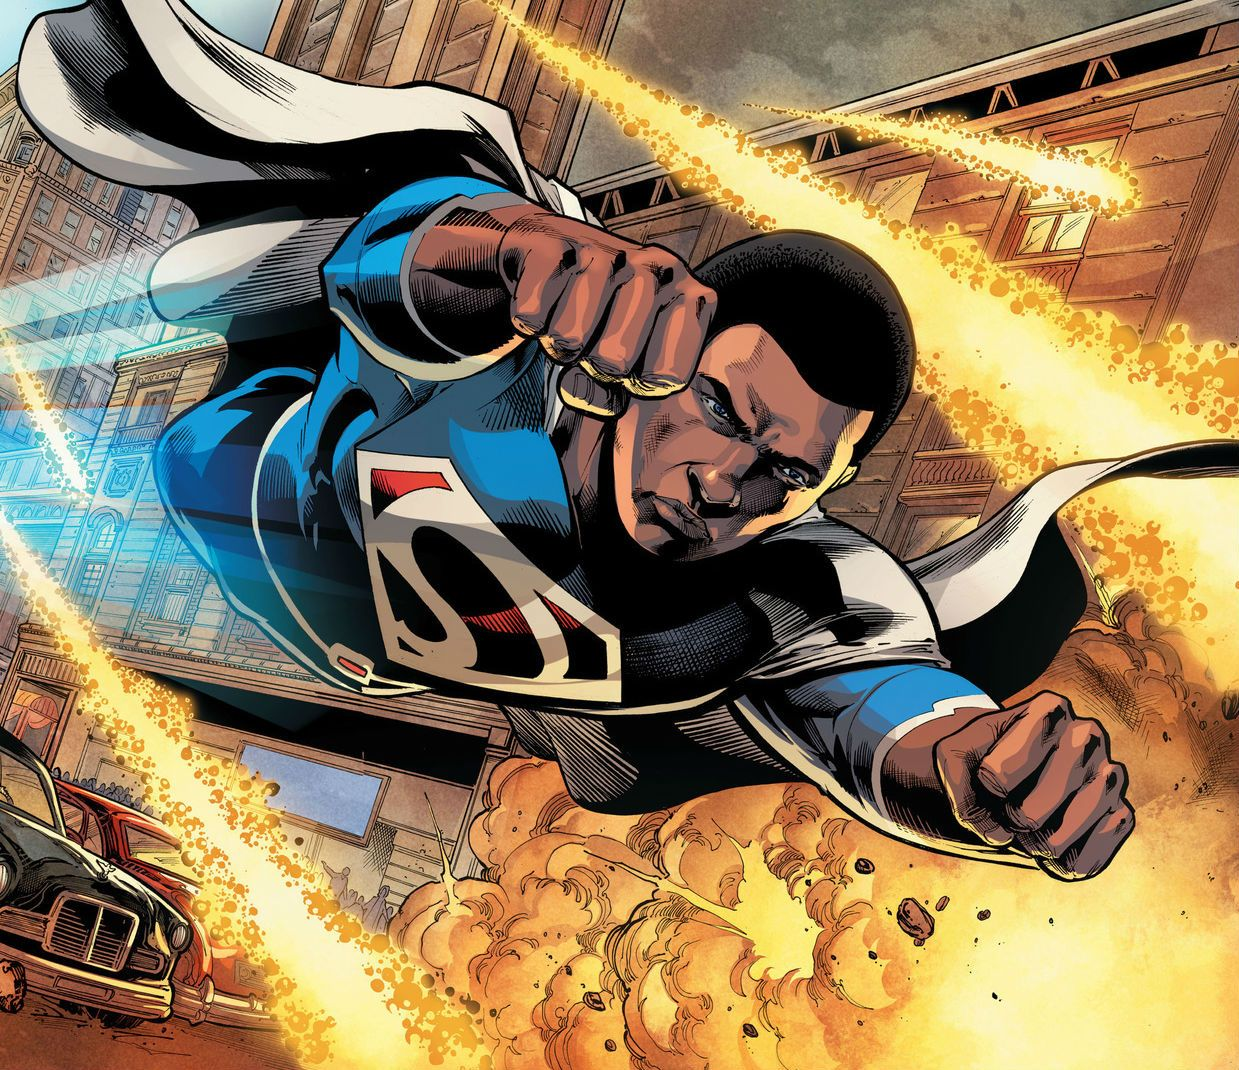 Superman Earth 2 (Val-Zod) by Vicente Cifuentes | Val zod, Female  superheroes and villains, Superhero comic